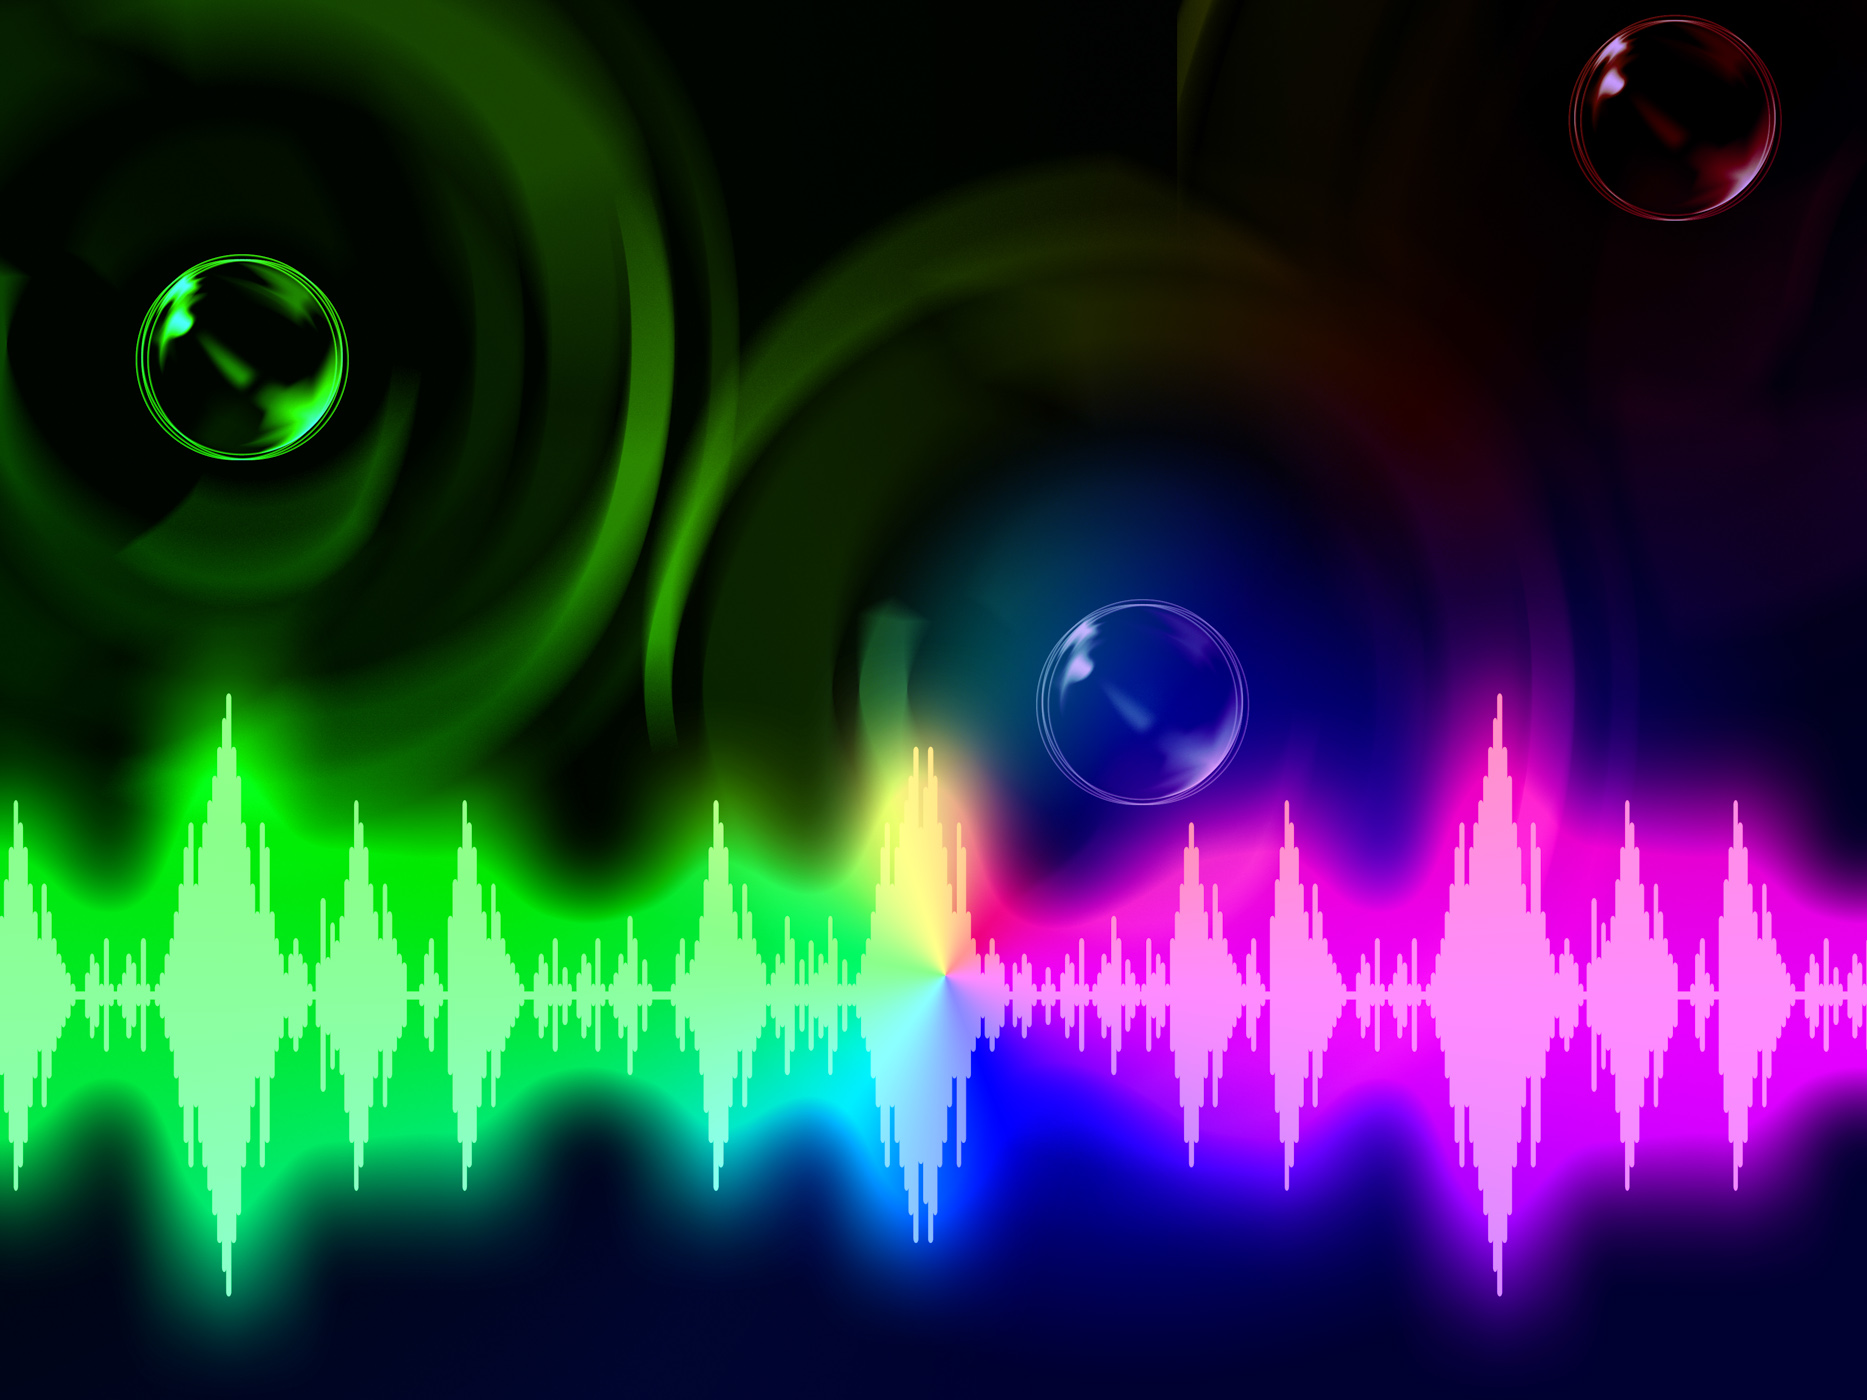 Sound wave background means music volume or amplifier photo